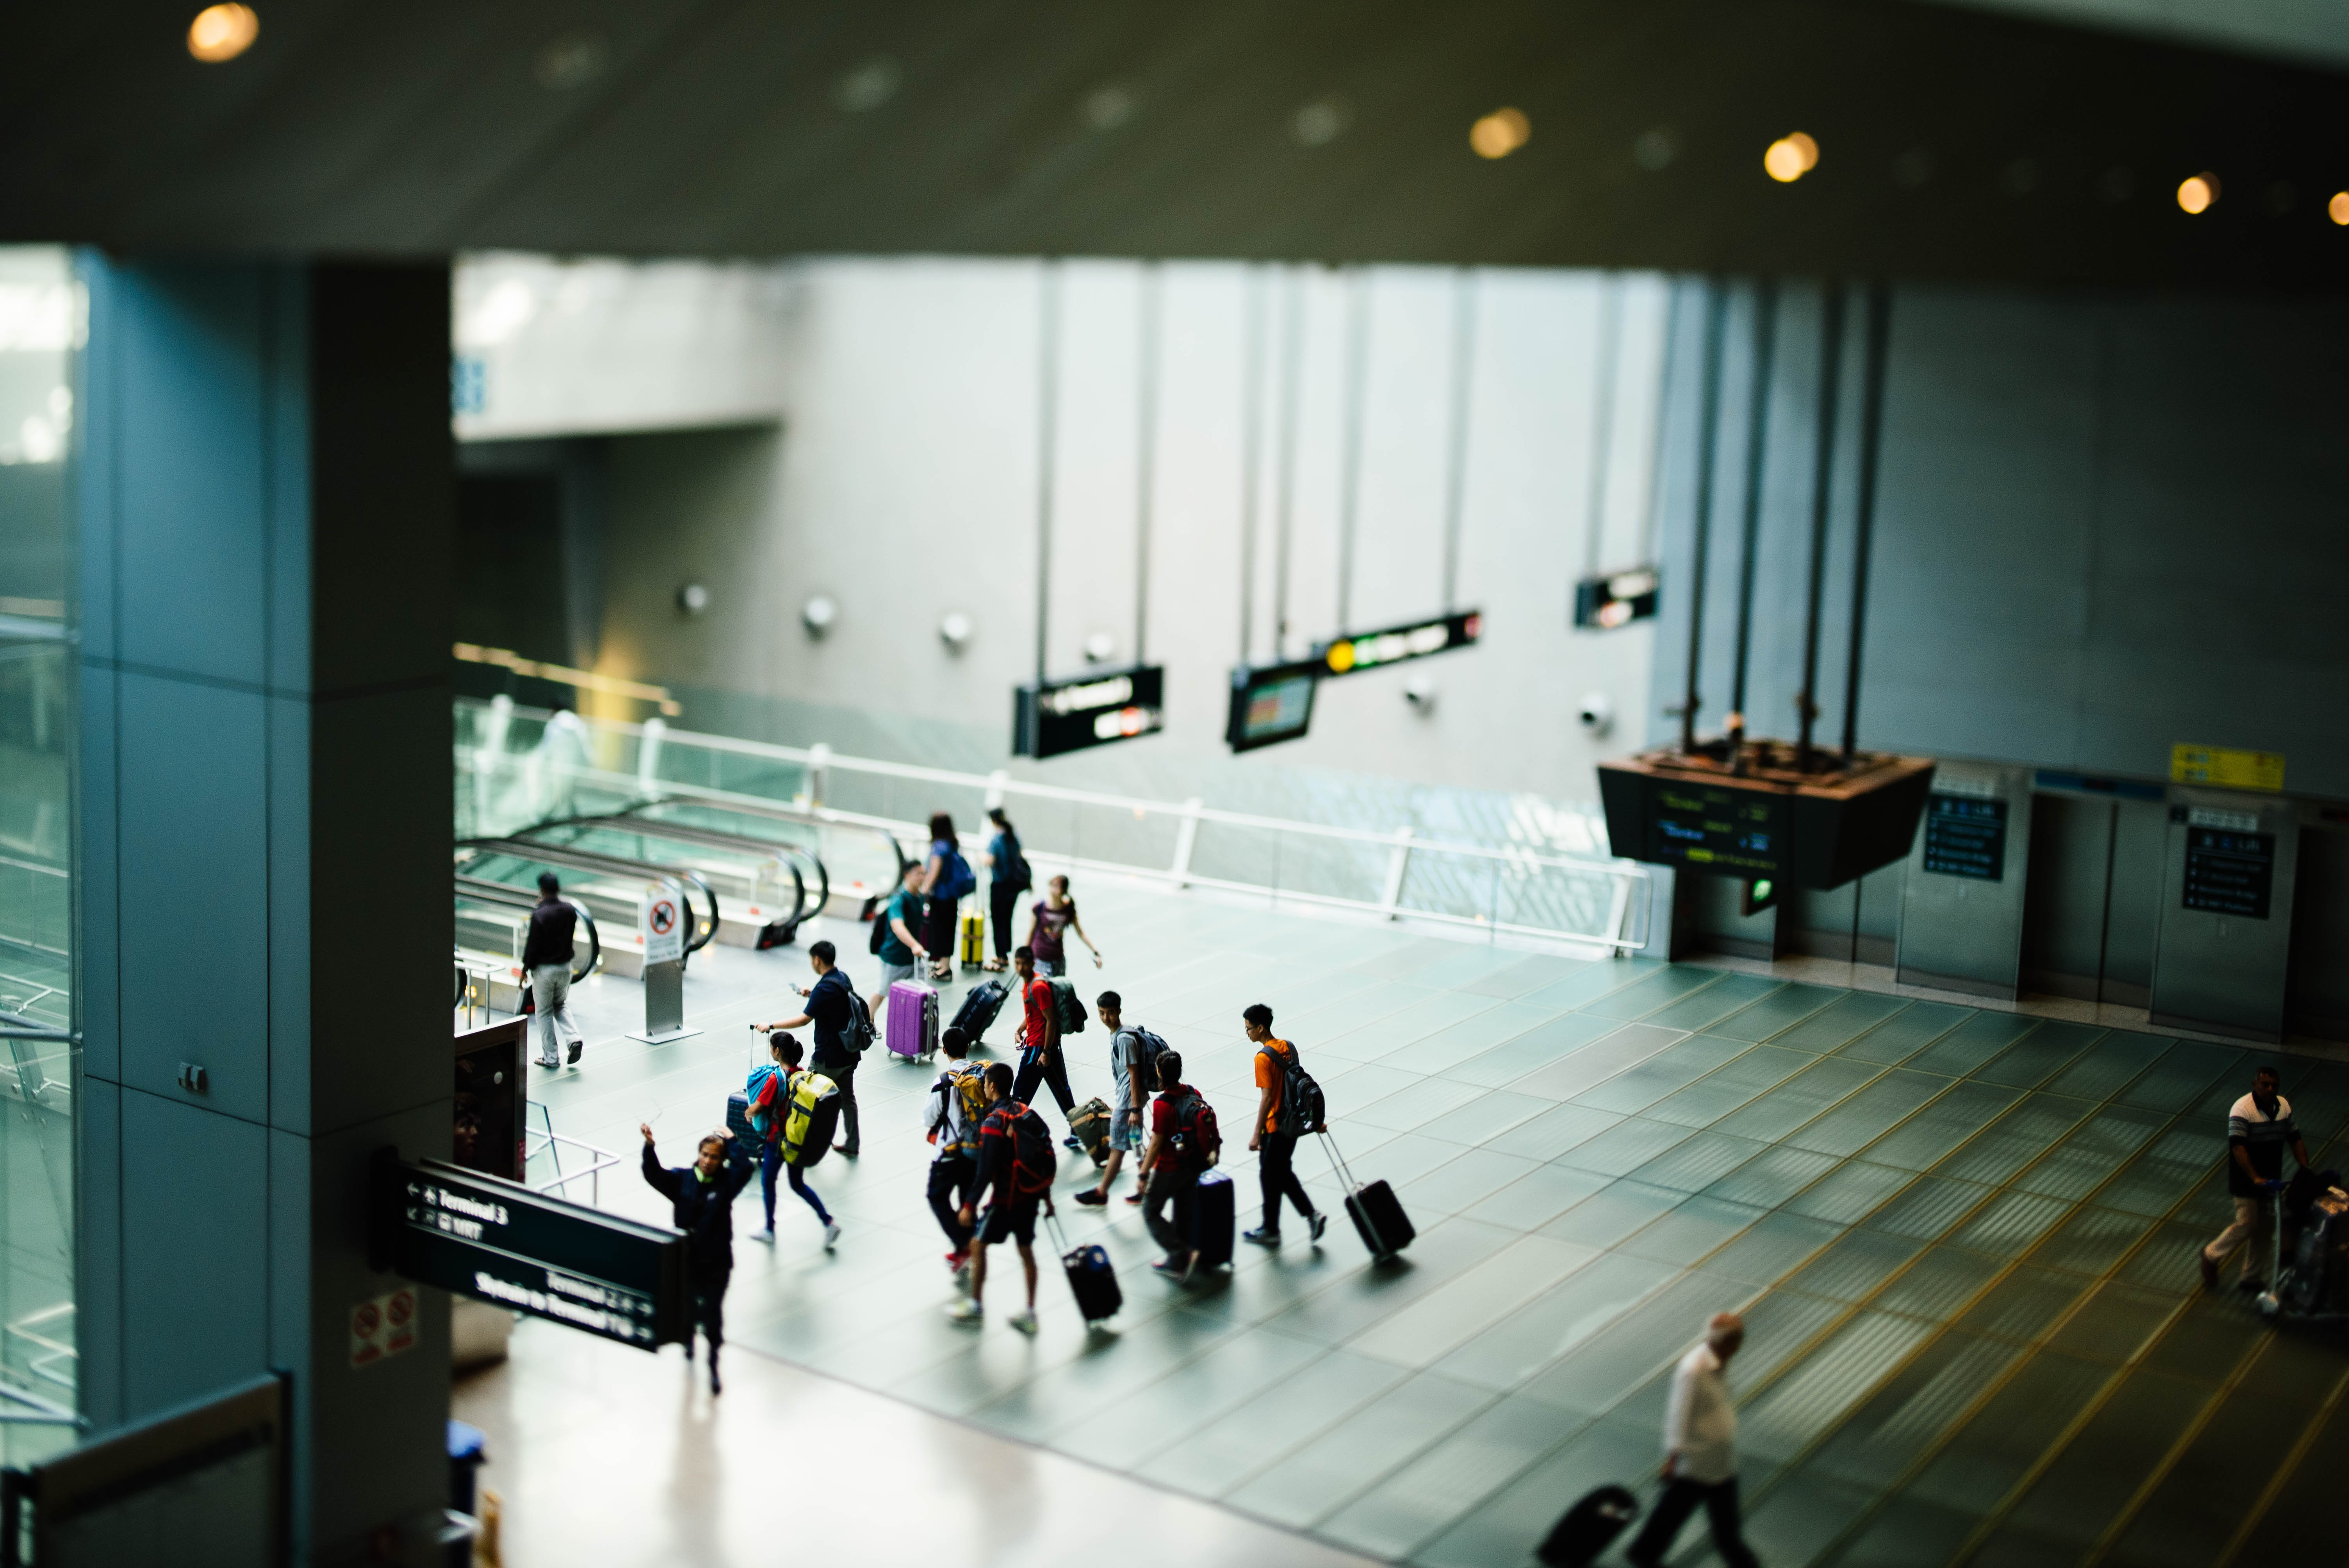 photo from above the inside of an airport terminal, passengers walking with suitcases